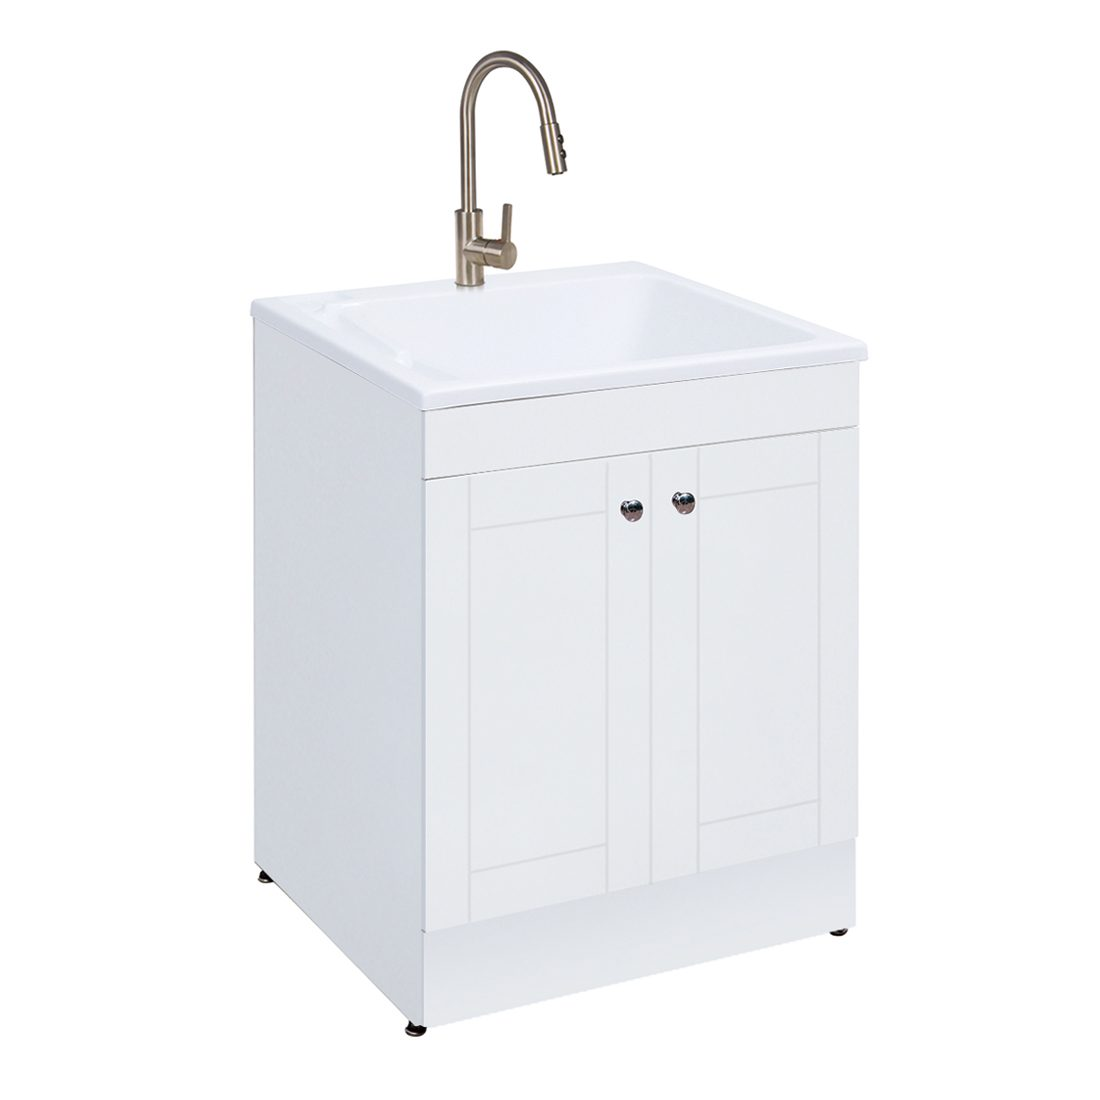 Hagen 24.4inch Laundry Cabinet White Inside View